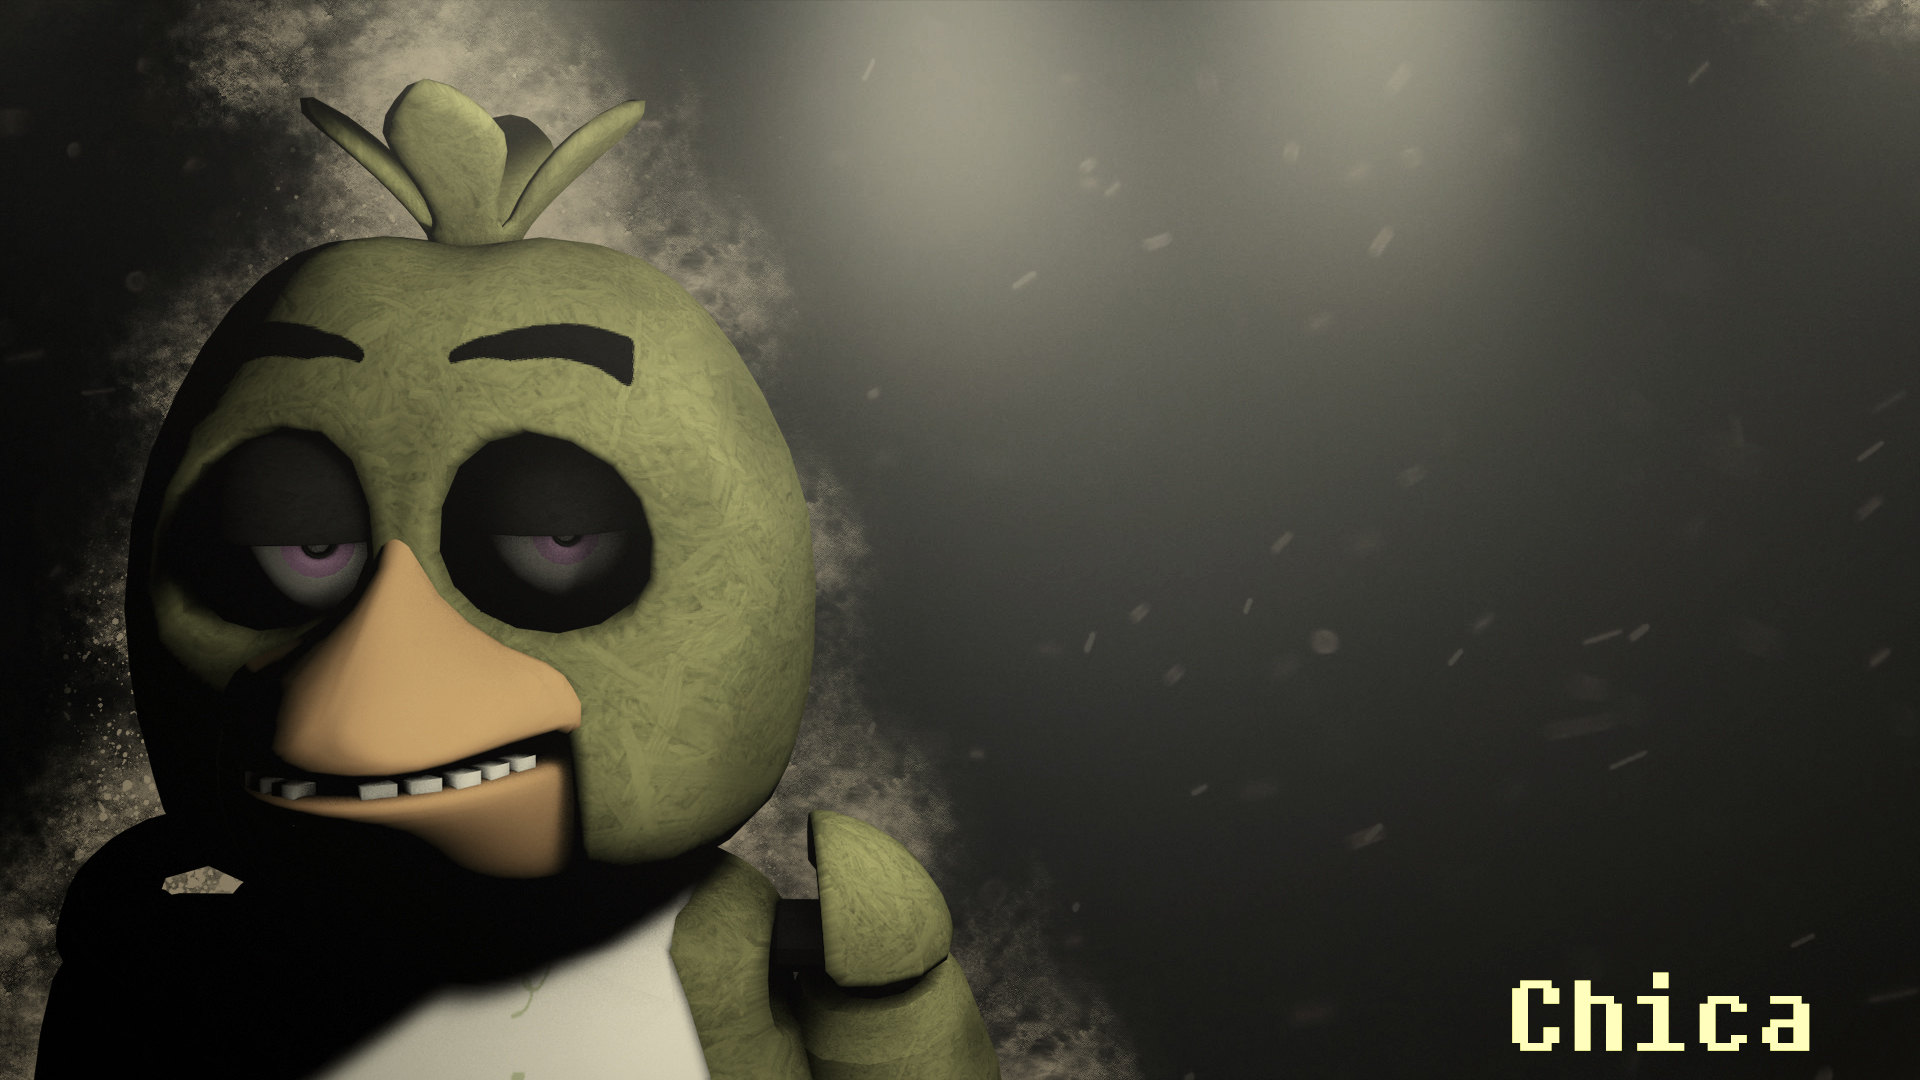 5 Nights At Freddy's Chica free download five nights at freddy s chica wallpaper